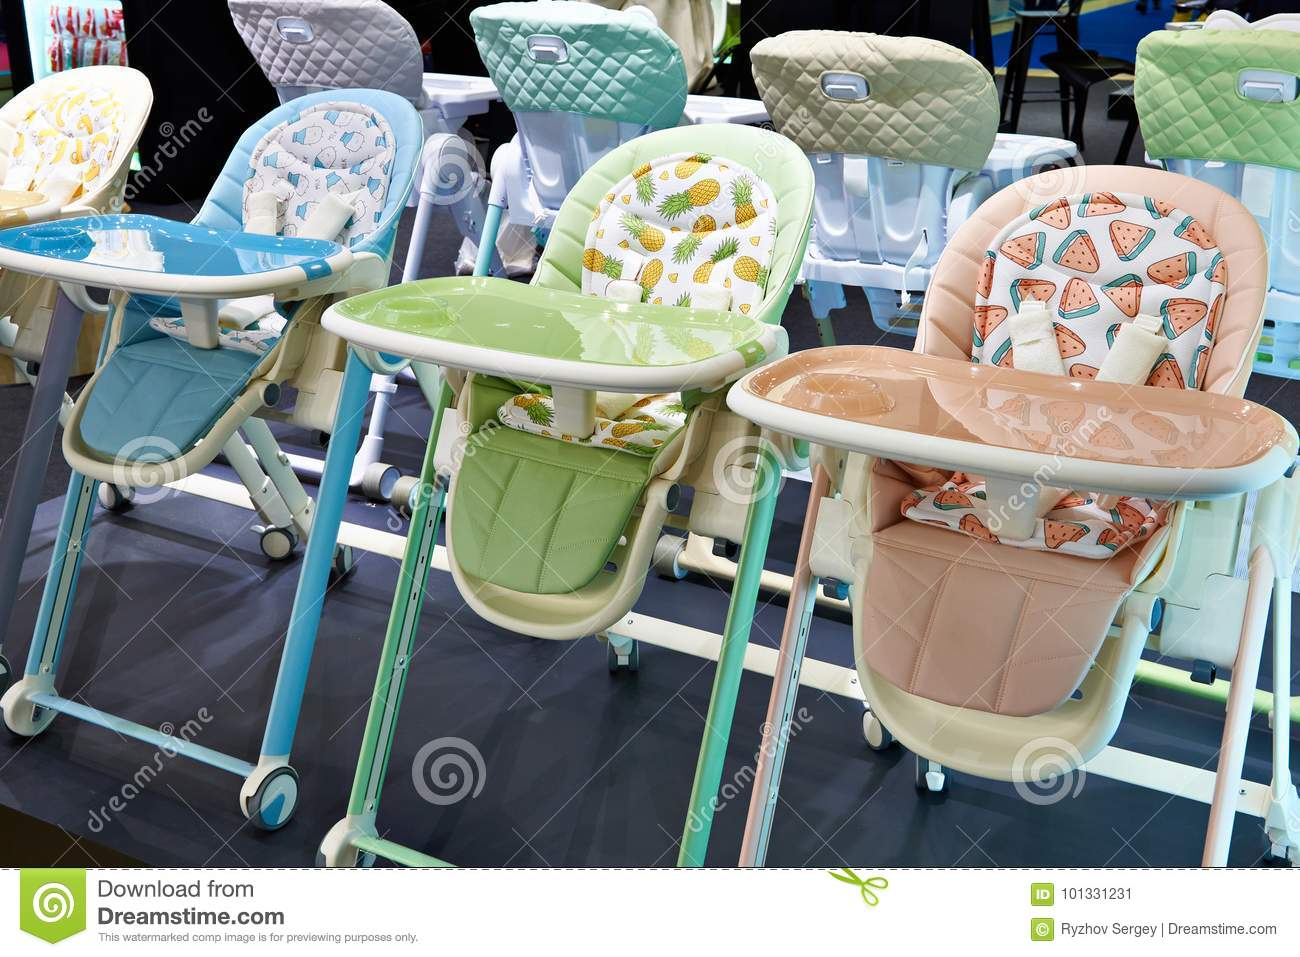 Chairs for feeding baby